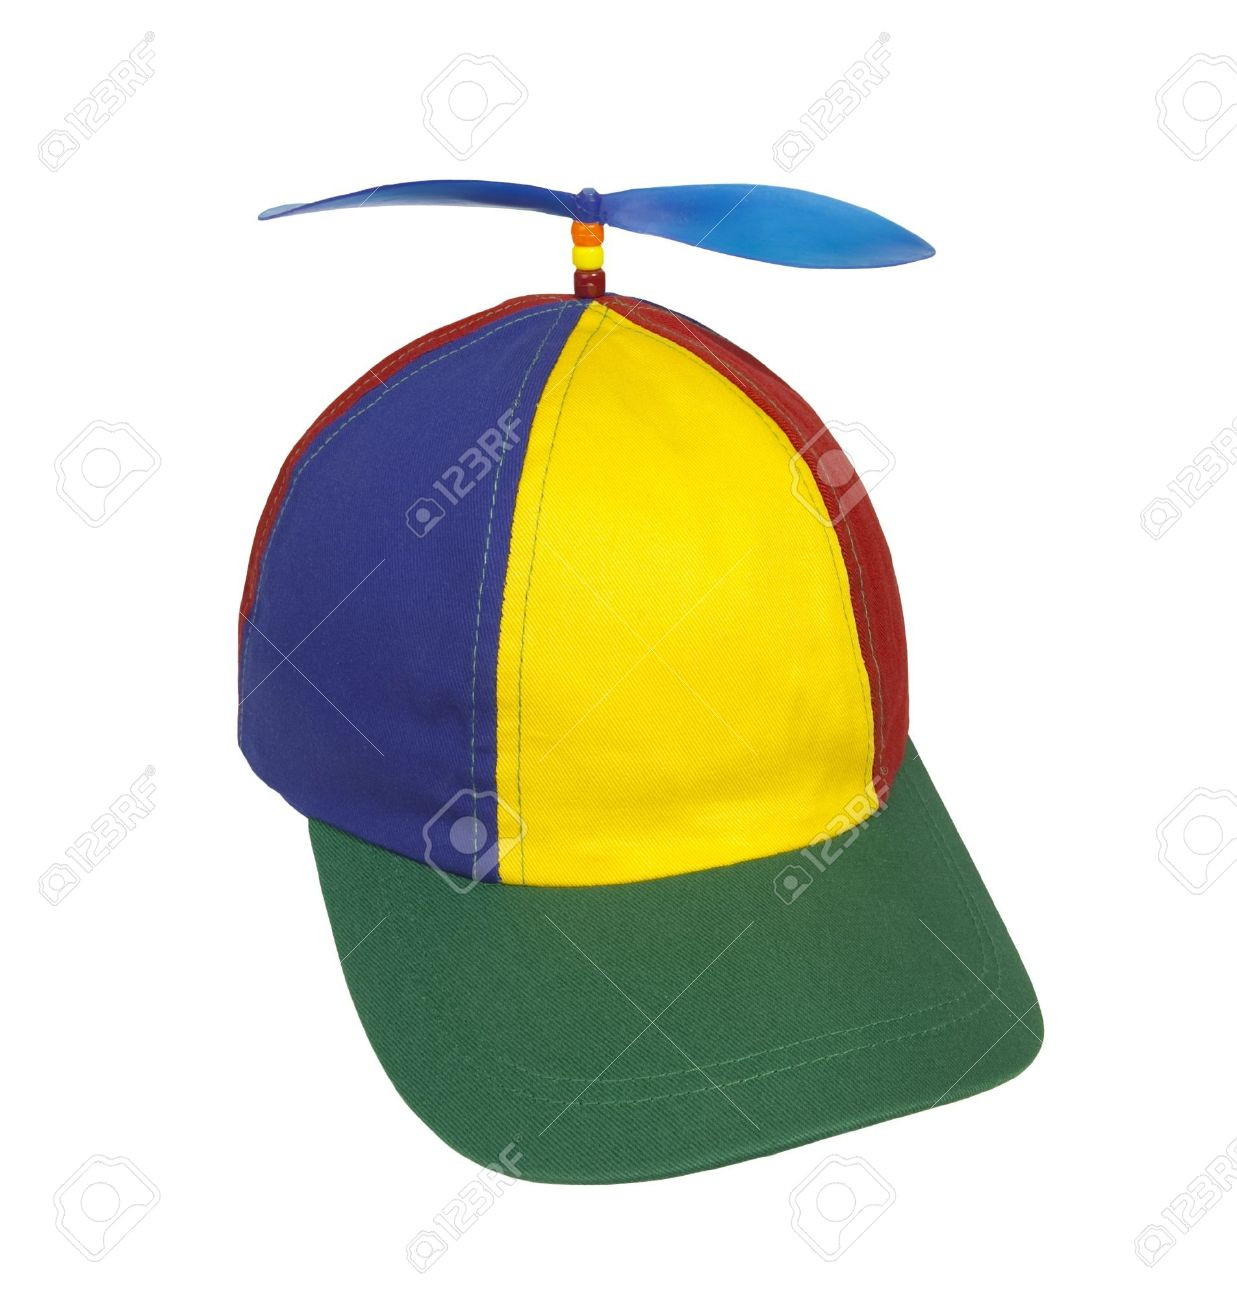 ca8a757dc5b43 Beanie cap with propeller Stock Photo - 6666898